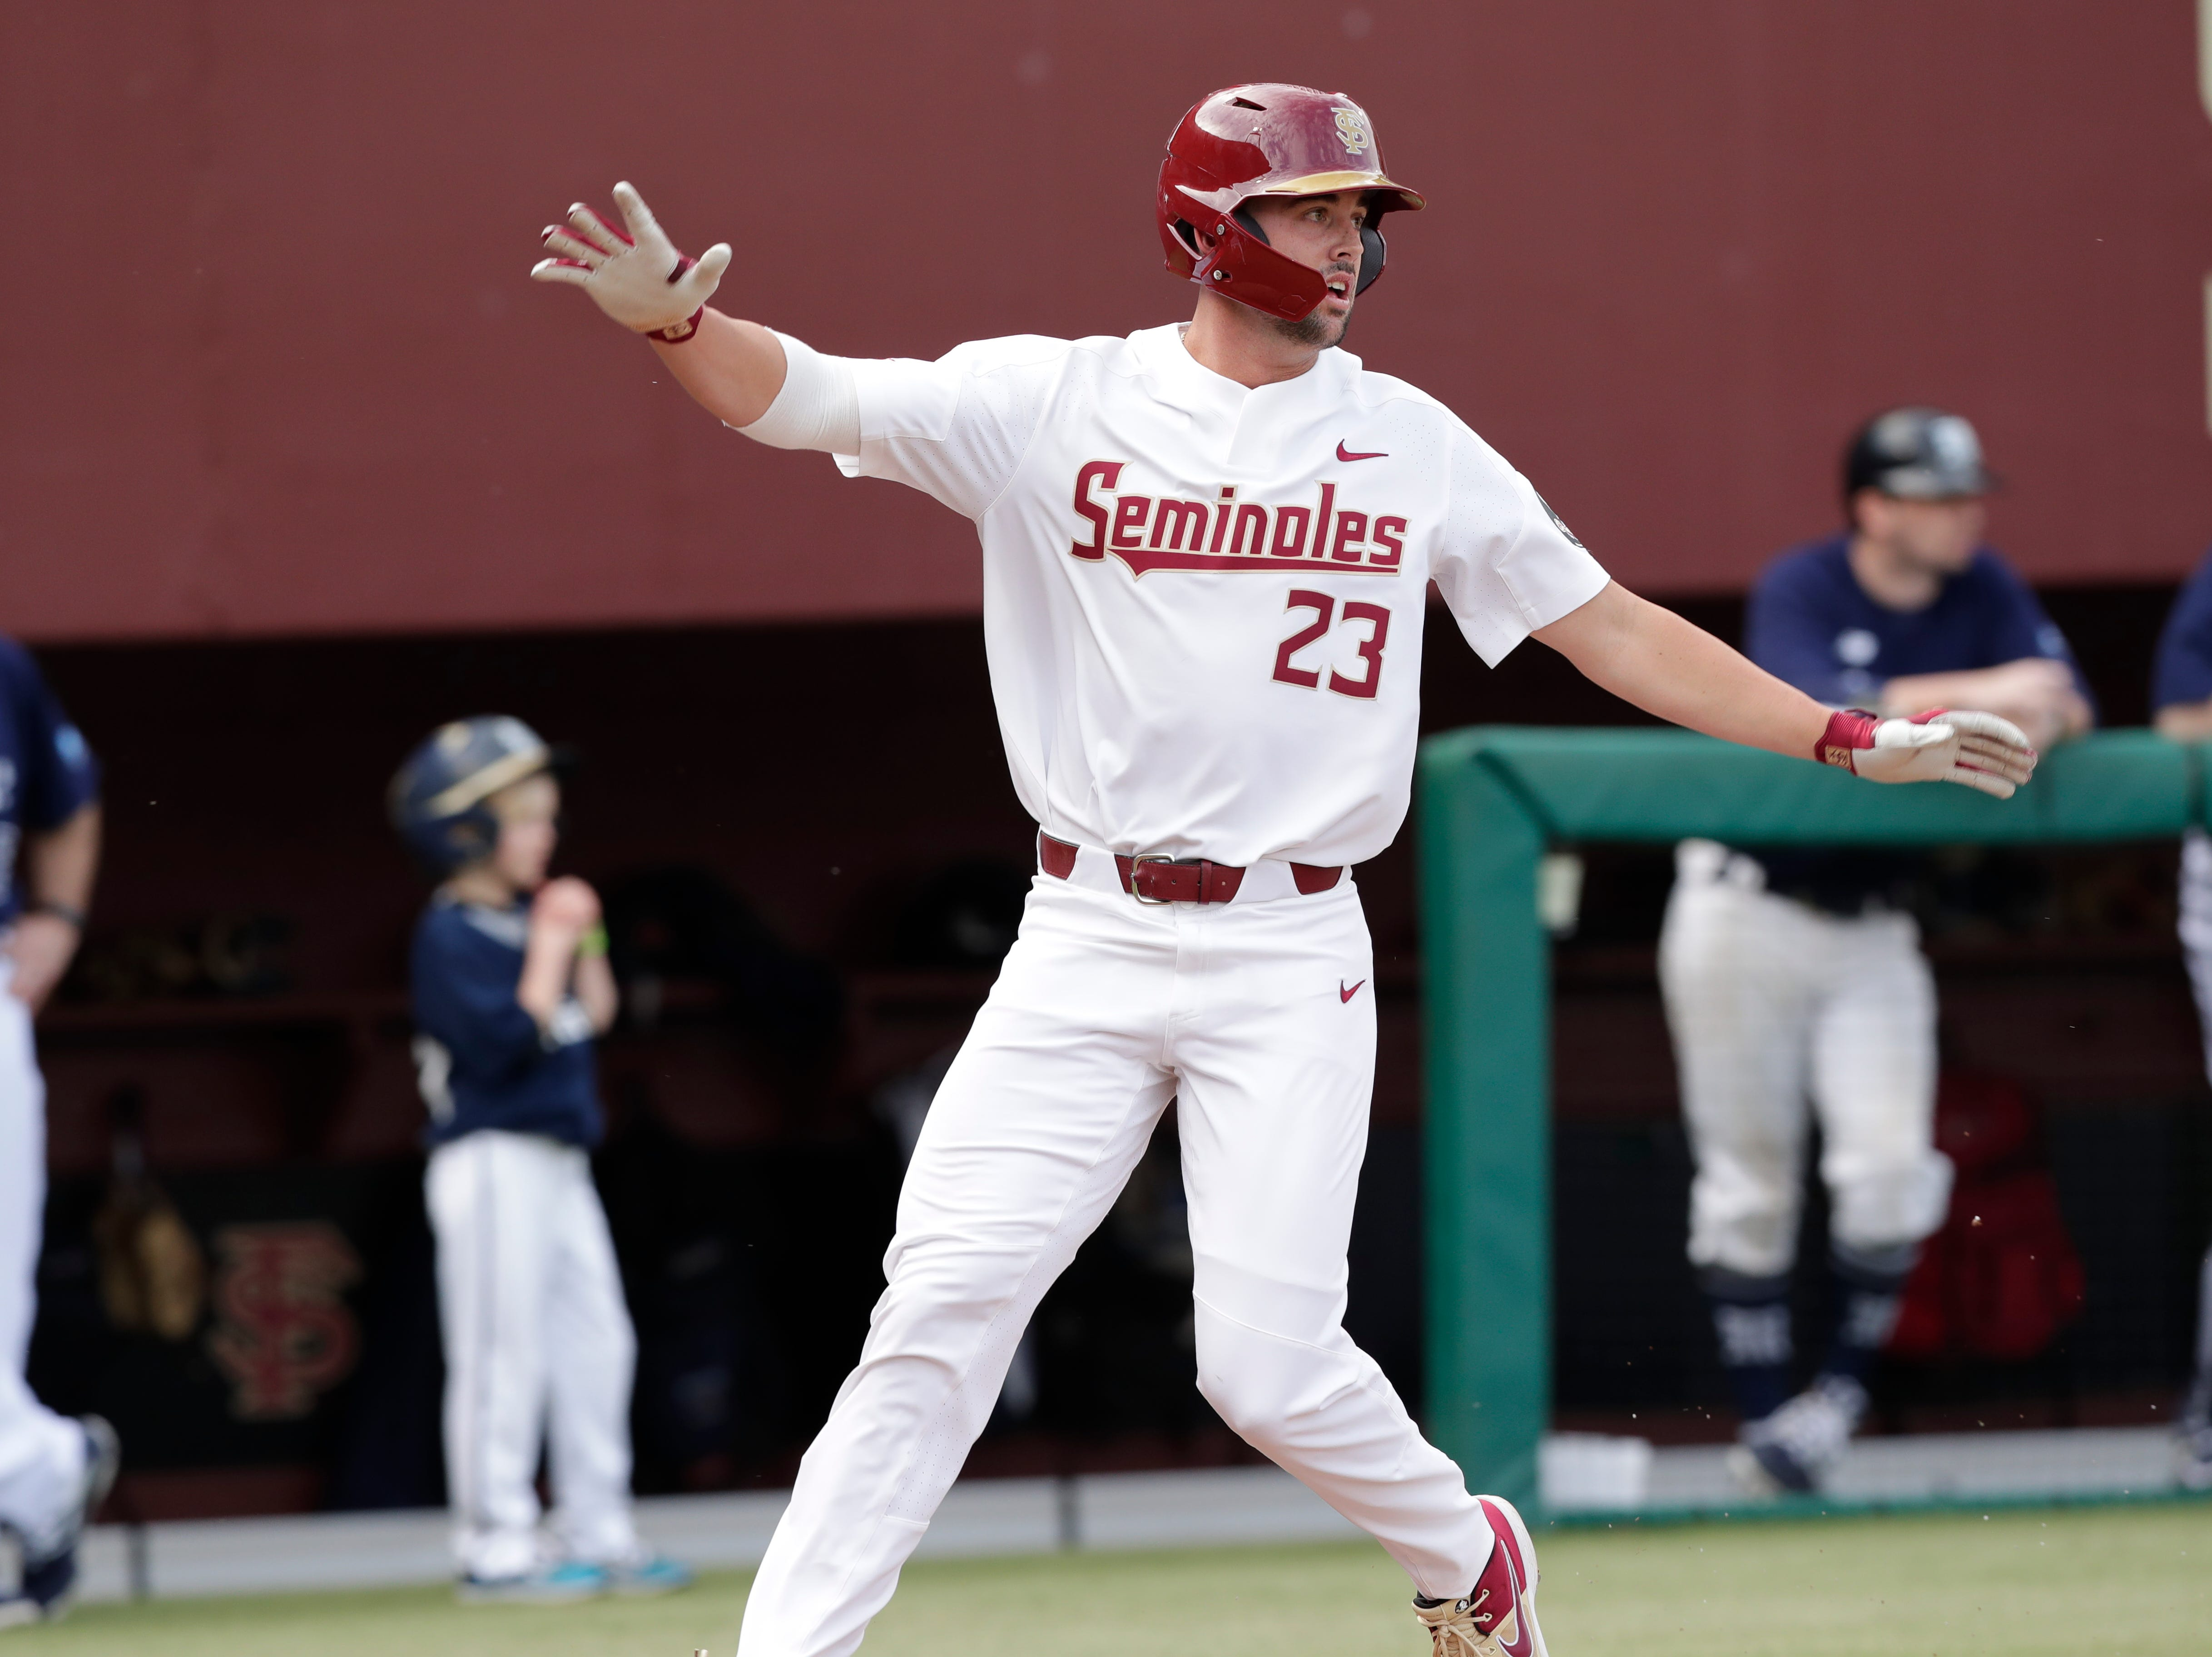 Florida State Seminoles outfielder/left handed pitcher Reese Albert (23) celebrates his run as the Florida State Seminoles host the Maine Black Bears in the 2019 season opener game, Friday Feb. 15, 2019.